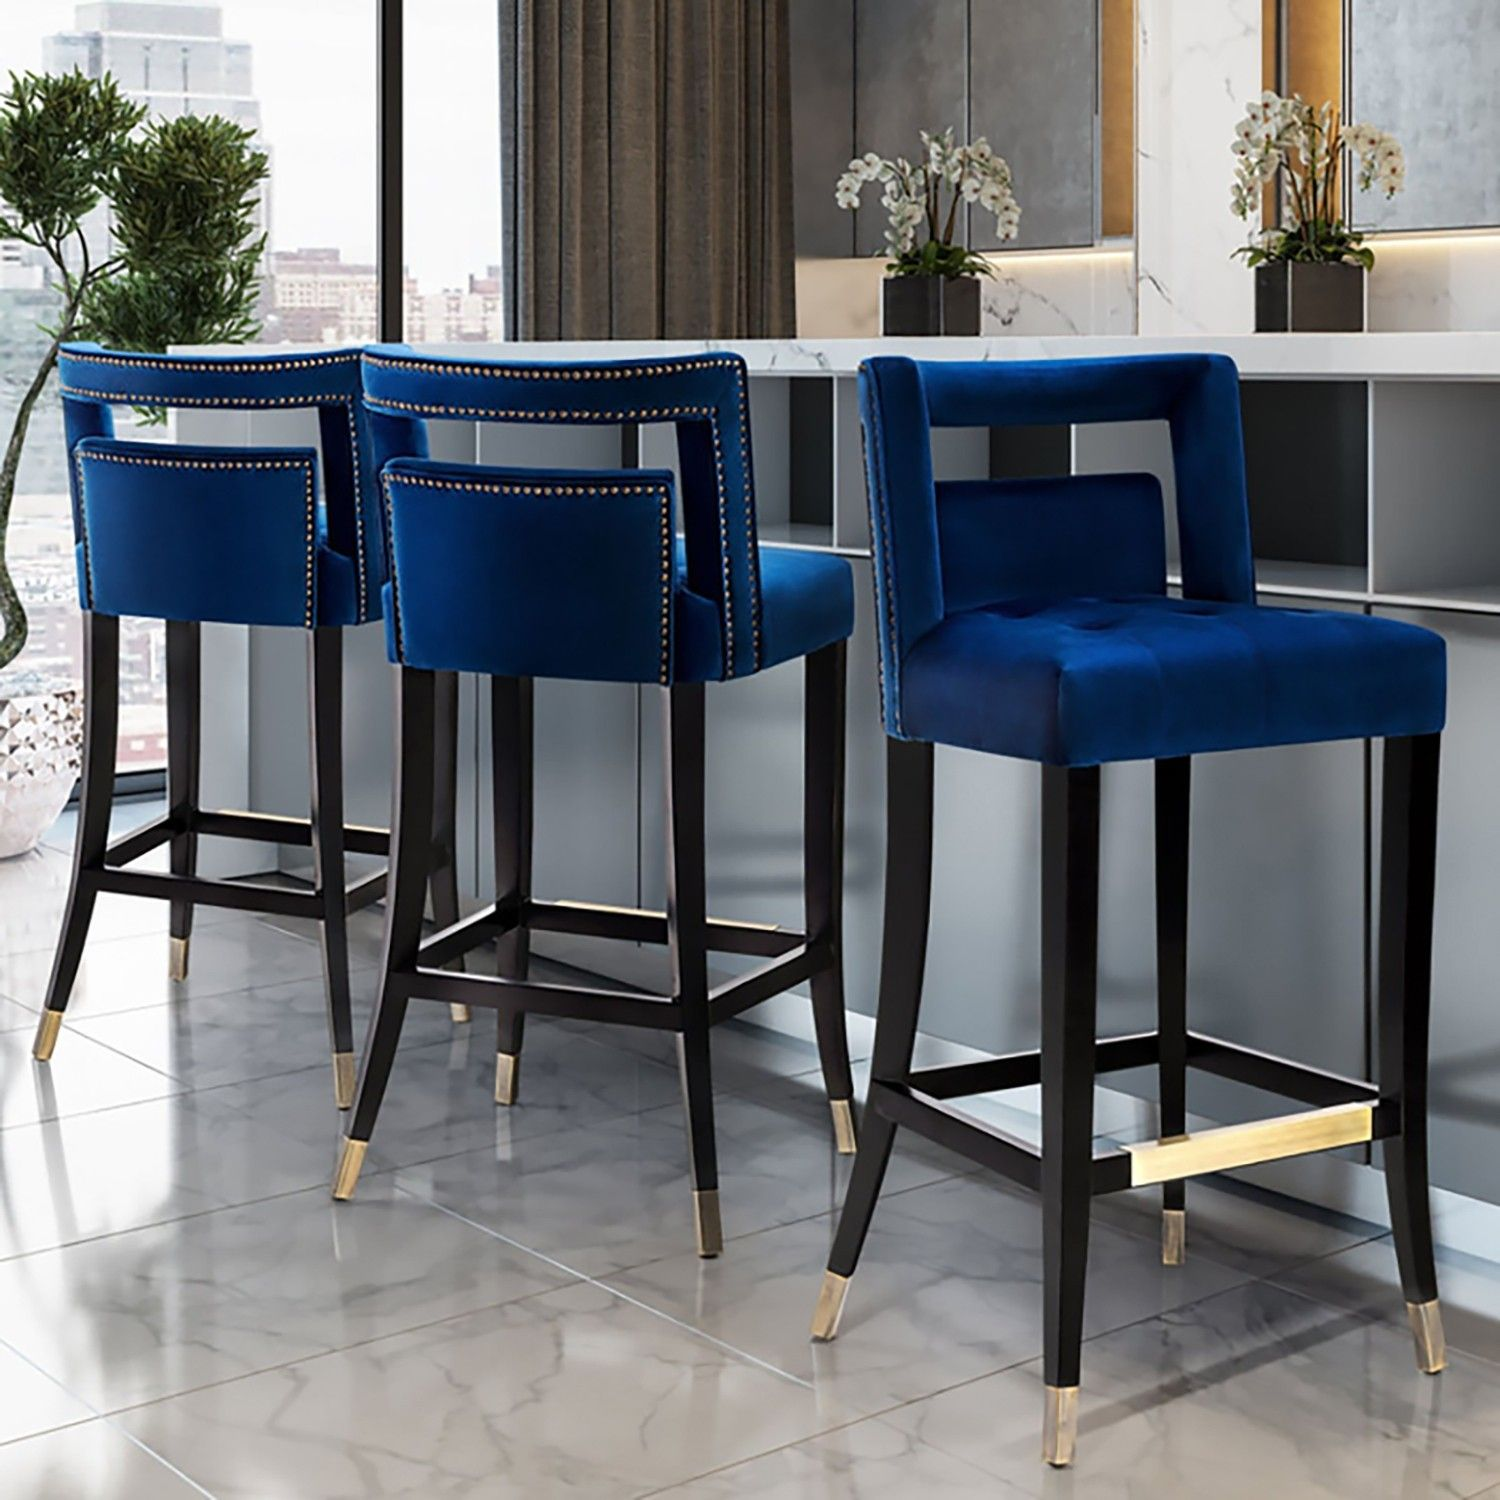 341 Ea Hart Stool Is Available In Bar And Counter Height Options In Sumptuous Grey Or Navy Bar Stools Kitchen Island Kitchen Stools Modern Kitchen Stools